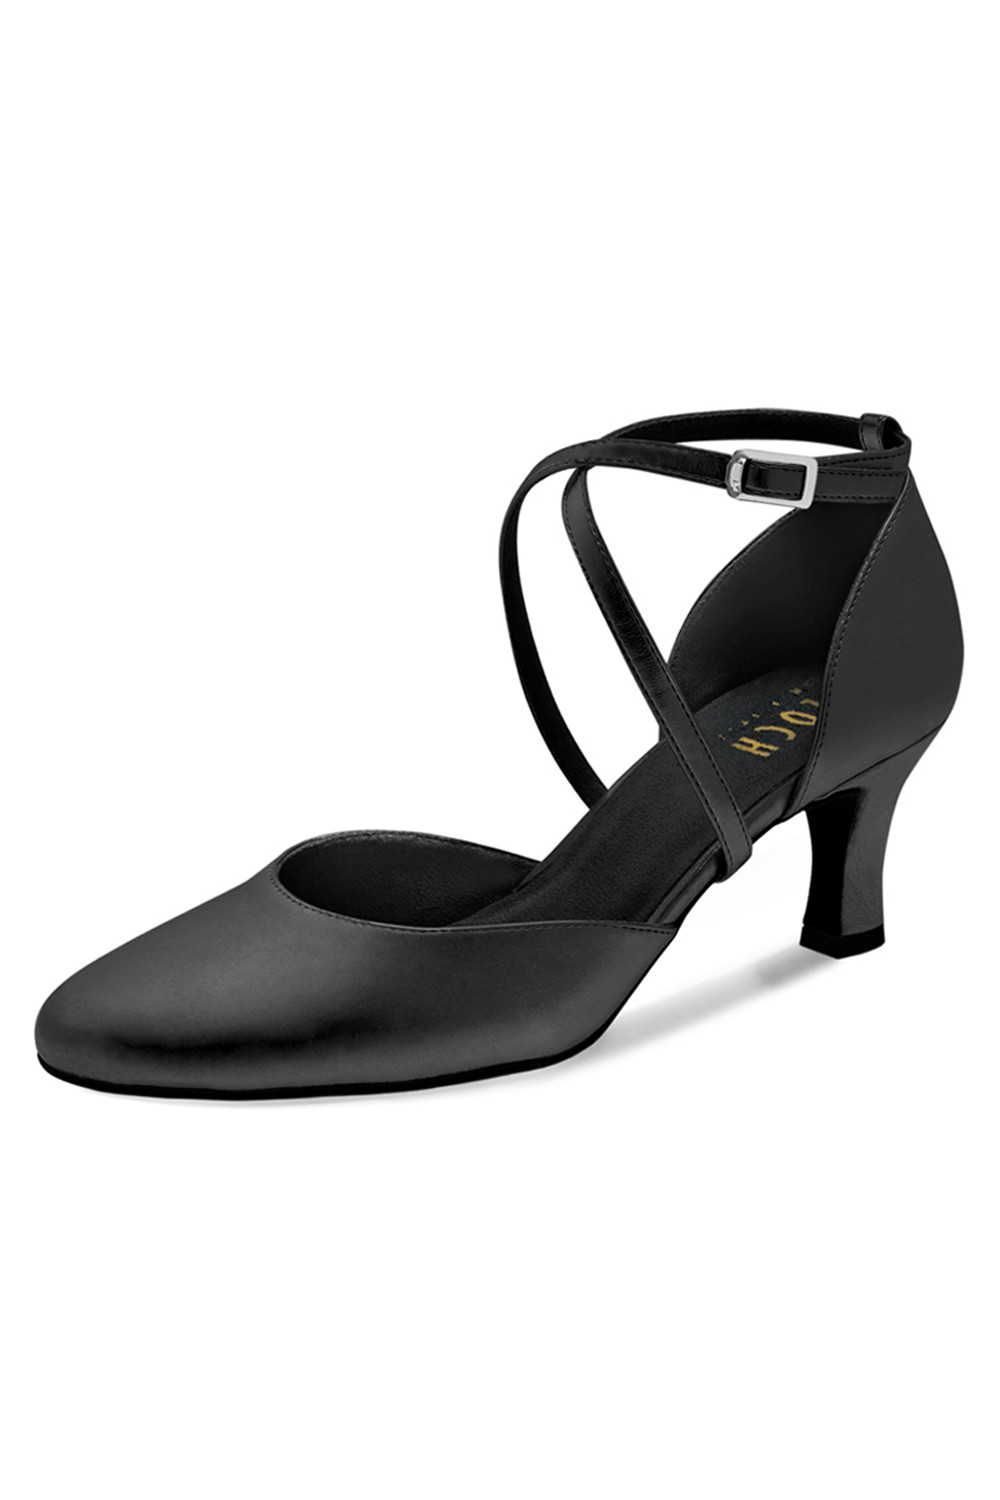 Simona Women's Ballroom & Latin Shoes